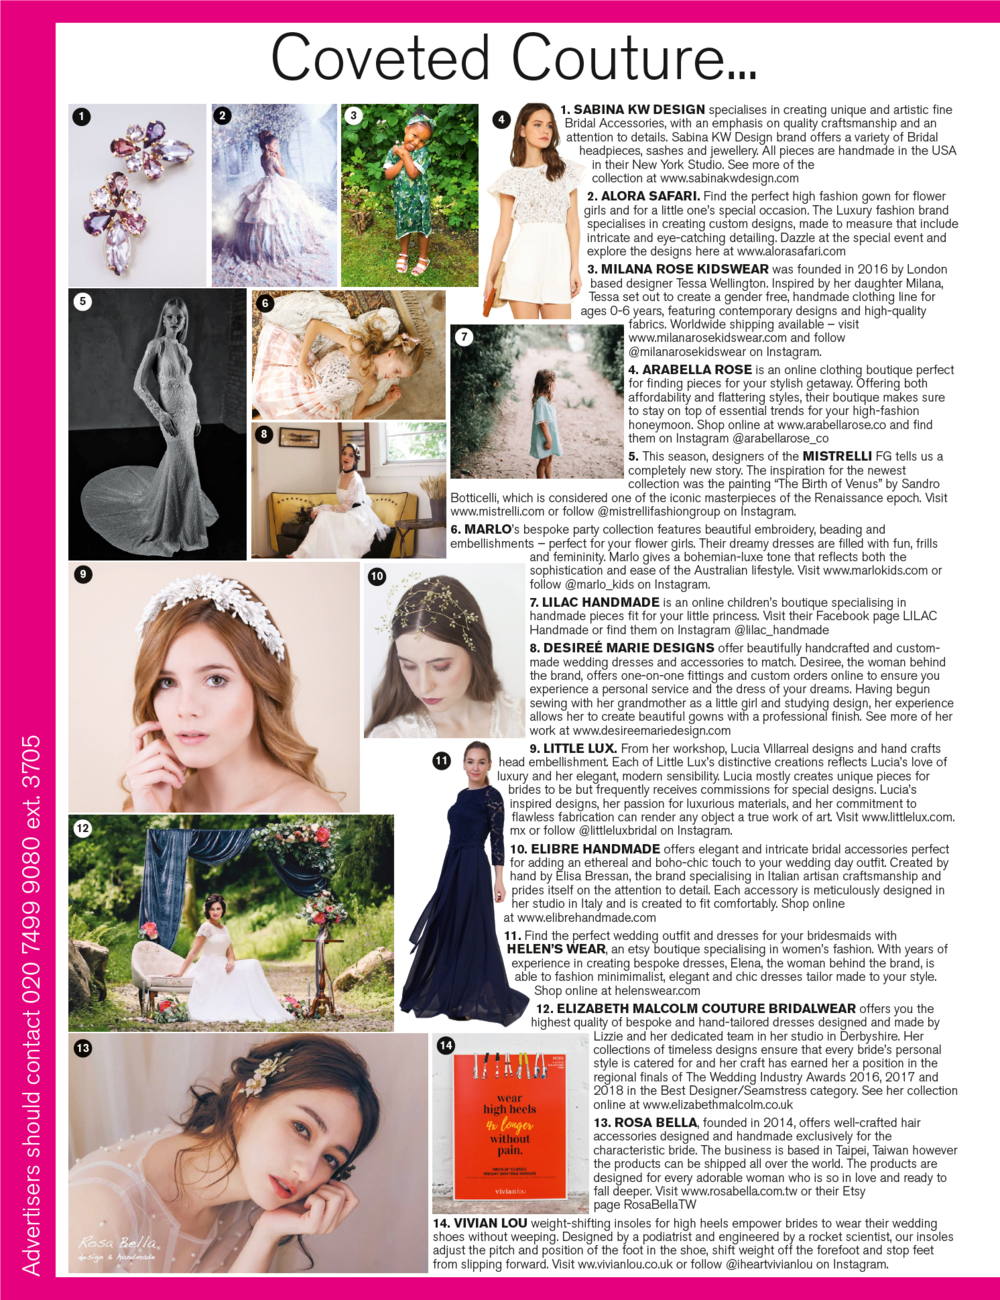 Nov/Dec 2018 Issue of BRIDES magazine on the 'Coveted Couture' page 250 Suggestion #8  Featuring my  Ellie  gown